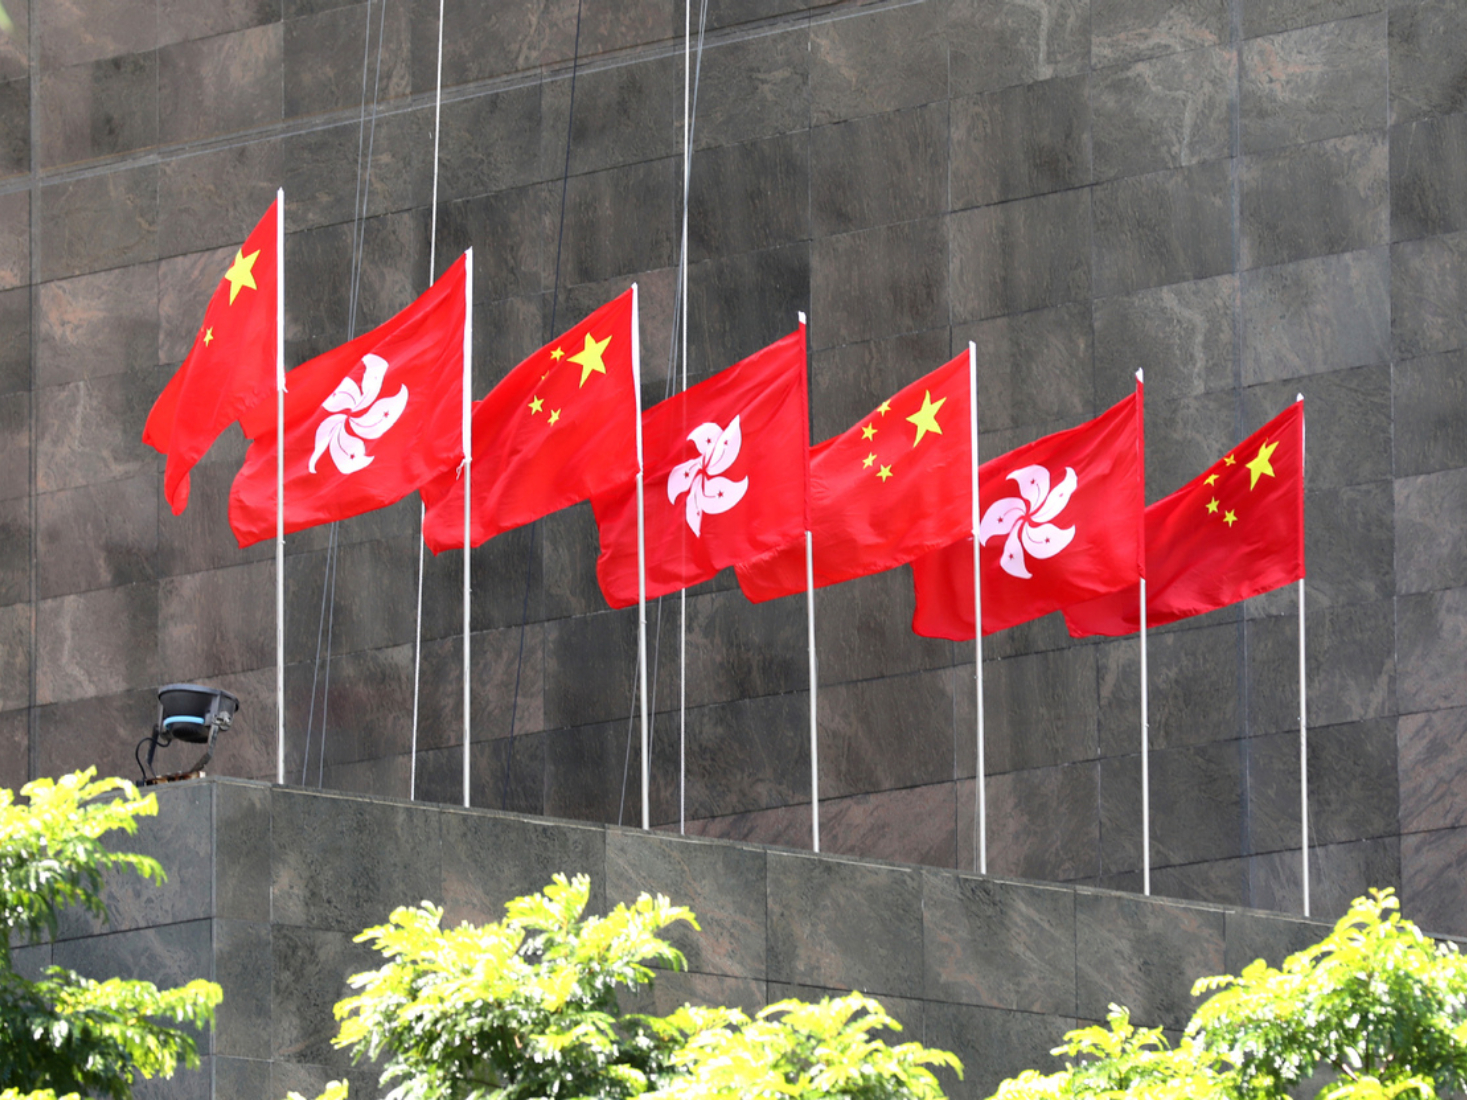 Liaison office of central gov't in HKSAR condemns attack against election candidate